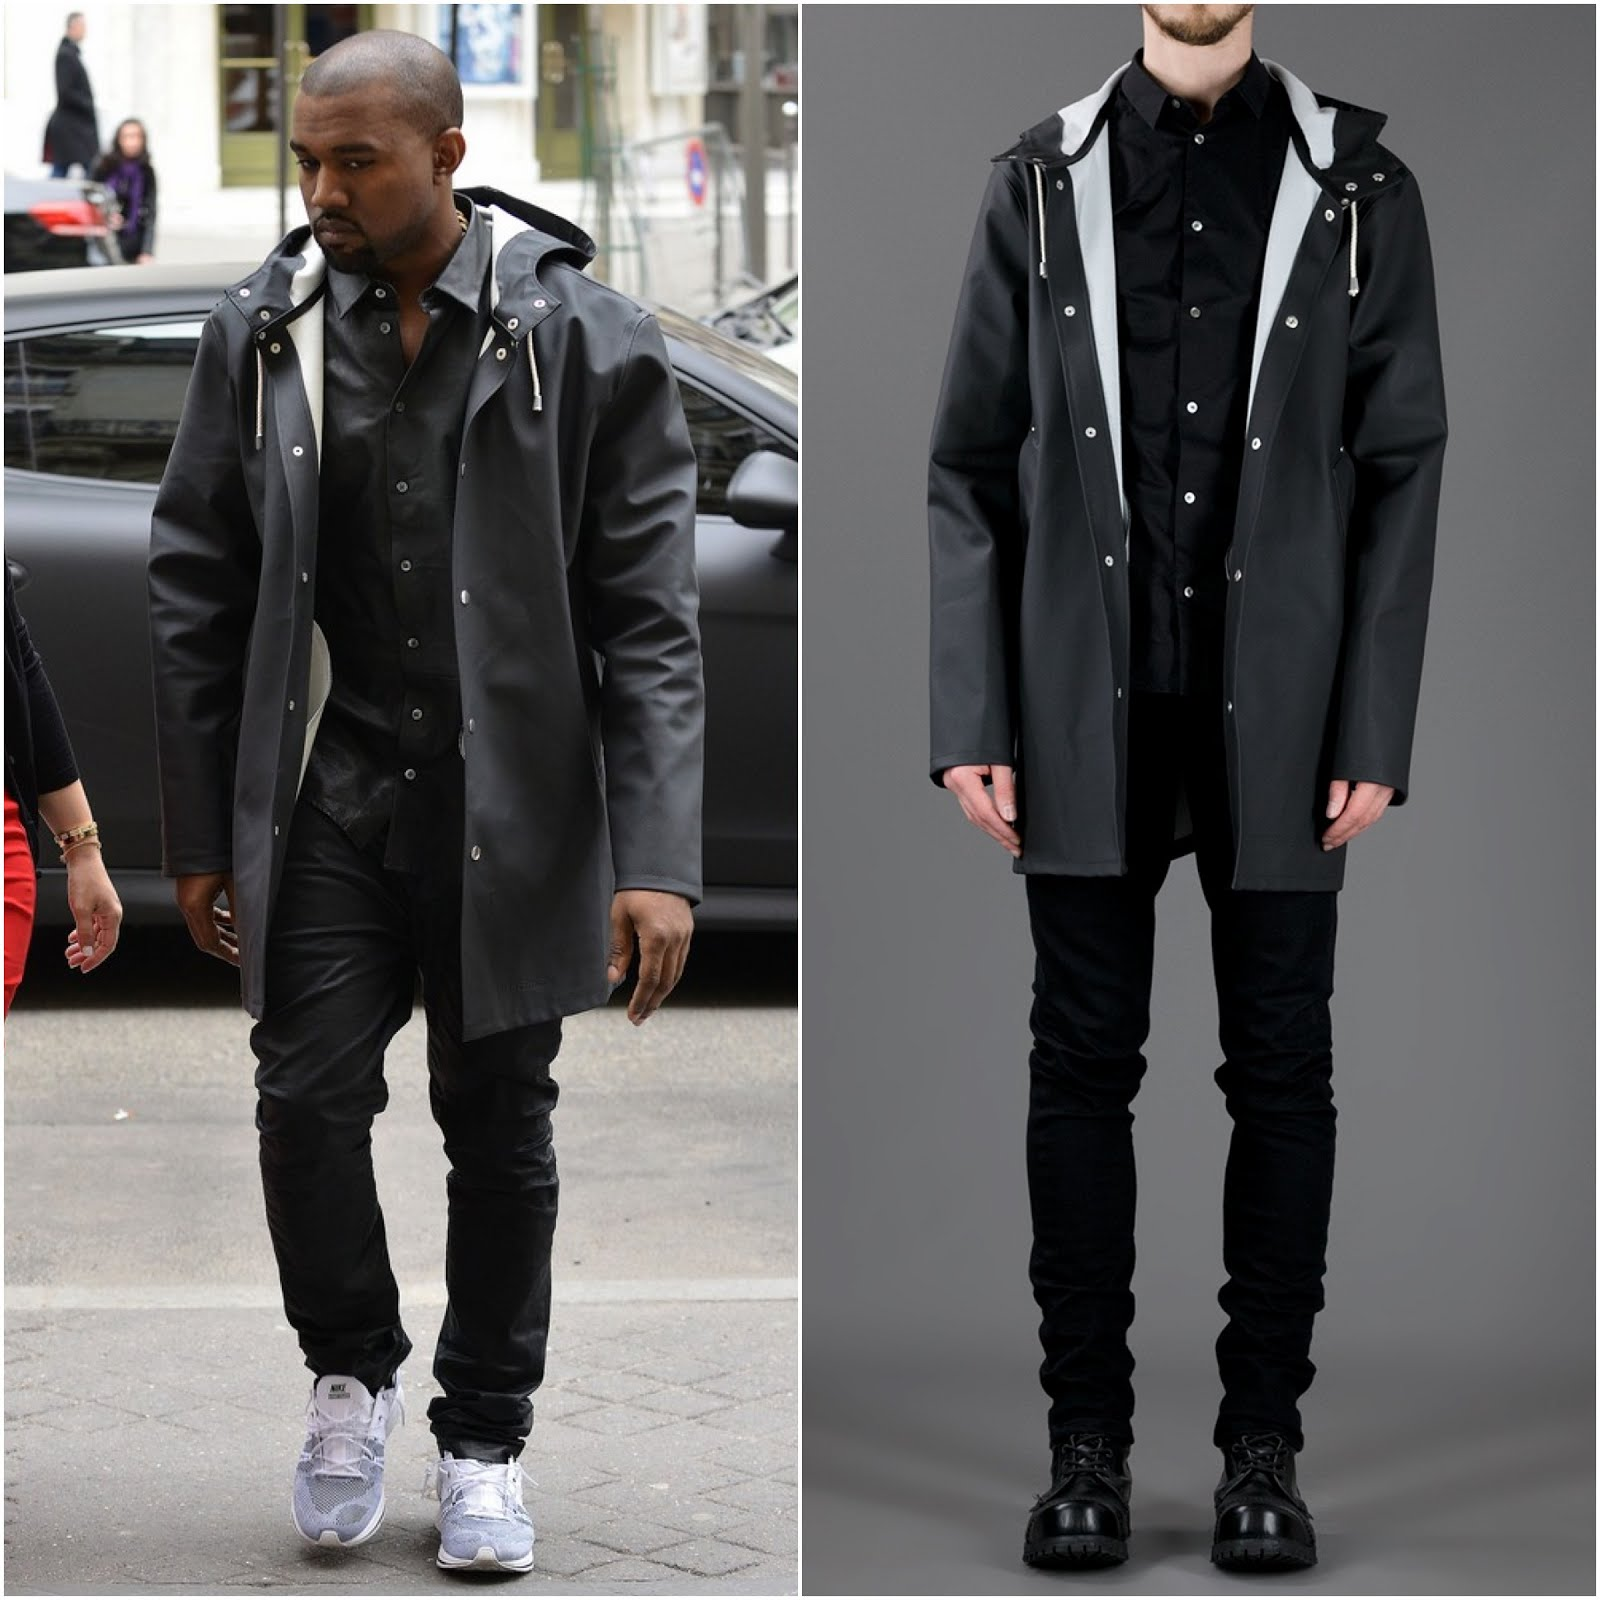 00O00 Menswear blog: Kanye West's Stutterheim jacket